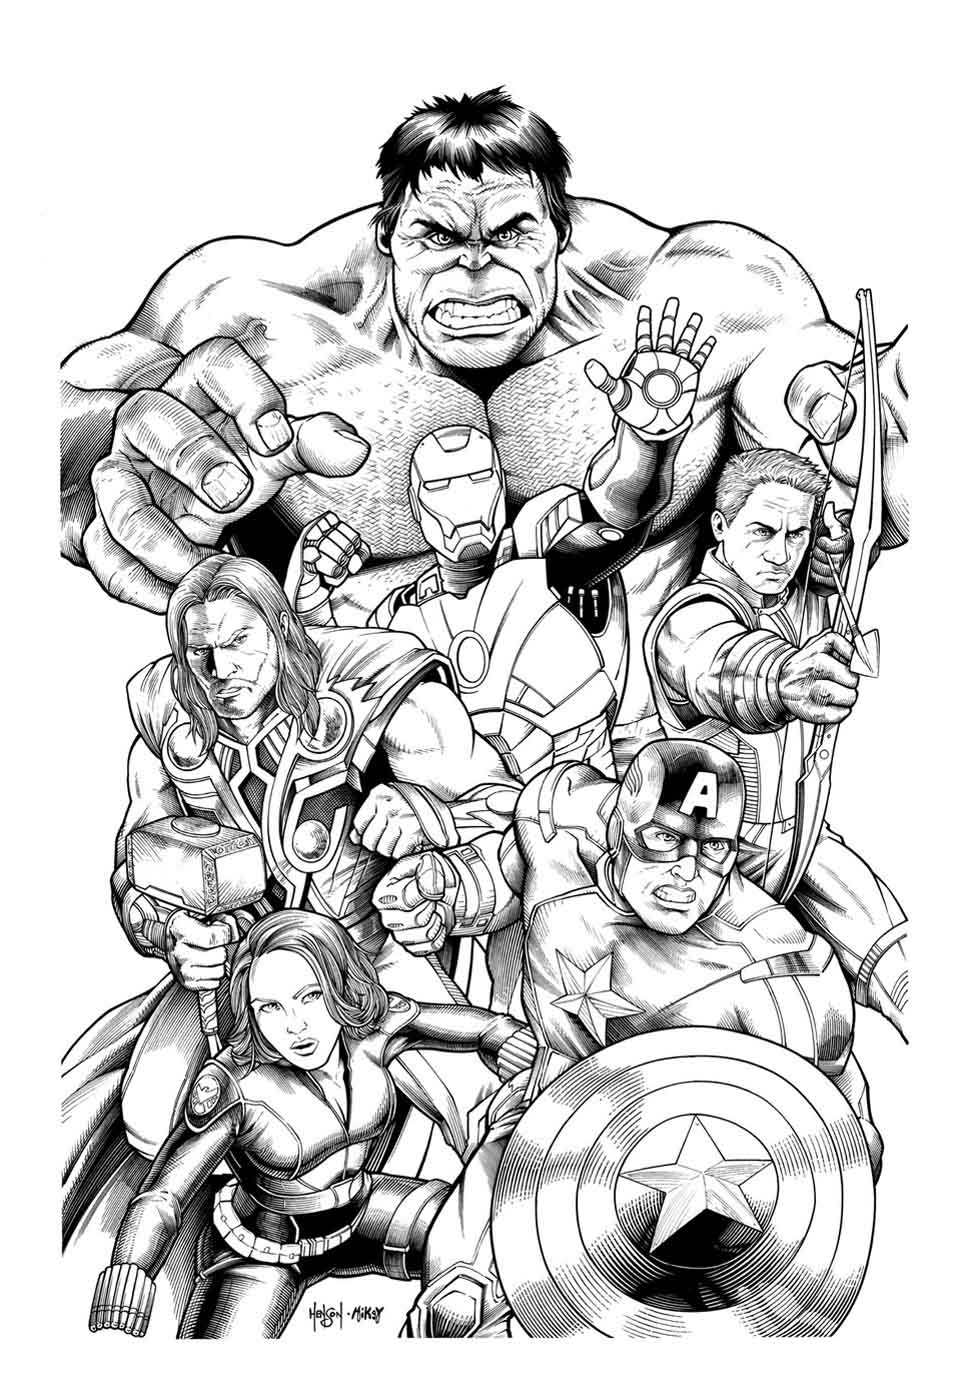 Avengers hulk | From the gallery : Books & Comics